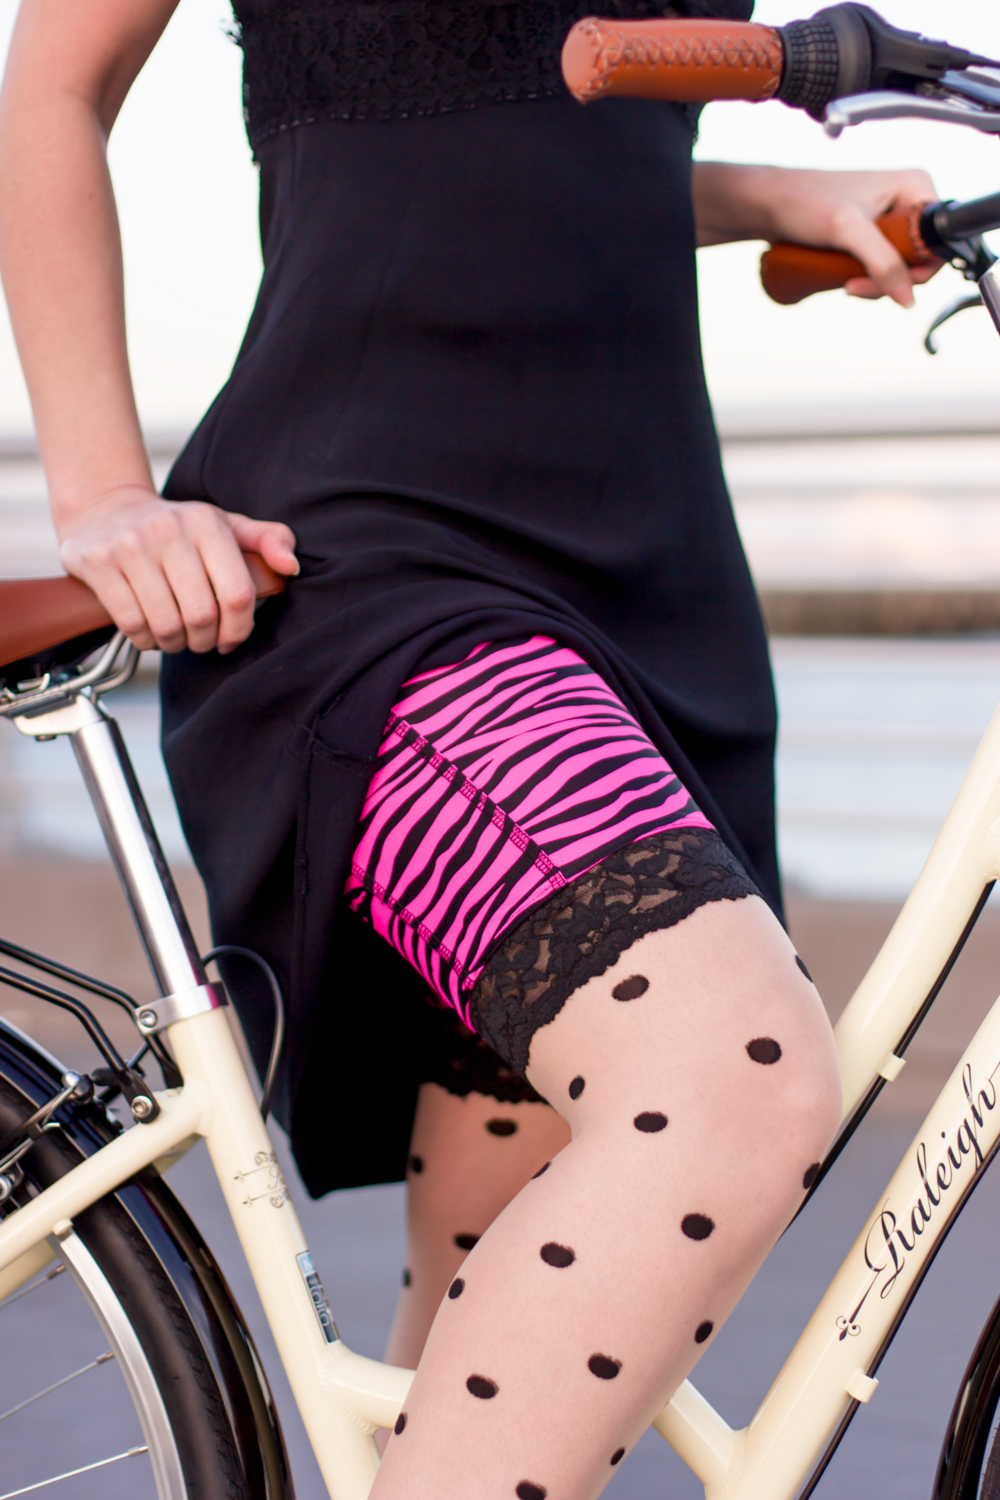 Bike-Pretty-Bikie-Girl-Bloomers.jpg